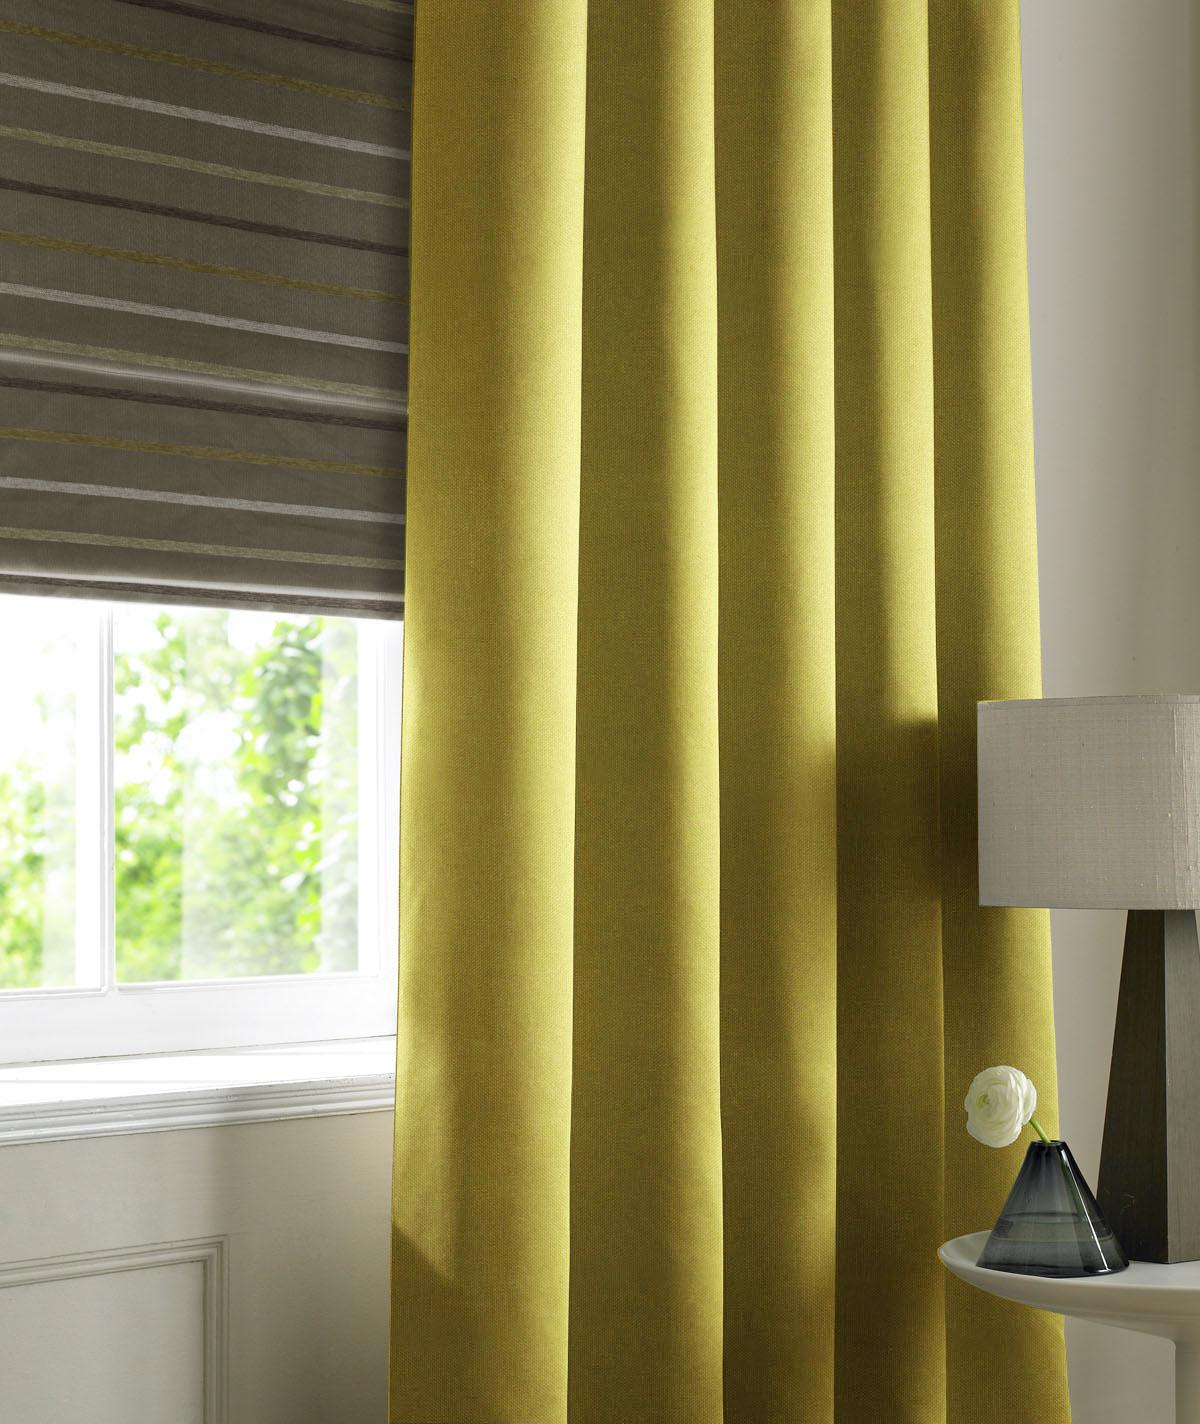 Stockists of Olive Panama Made to Measure Curtains